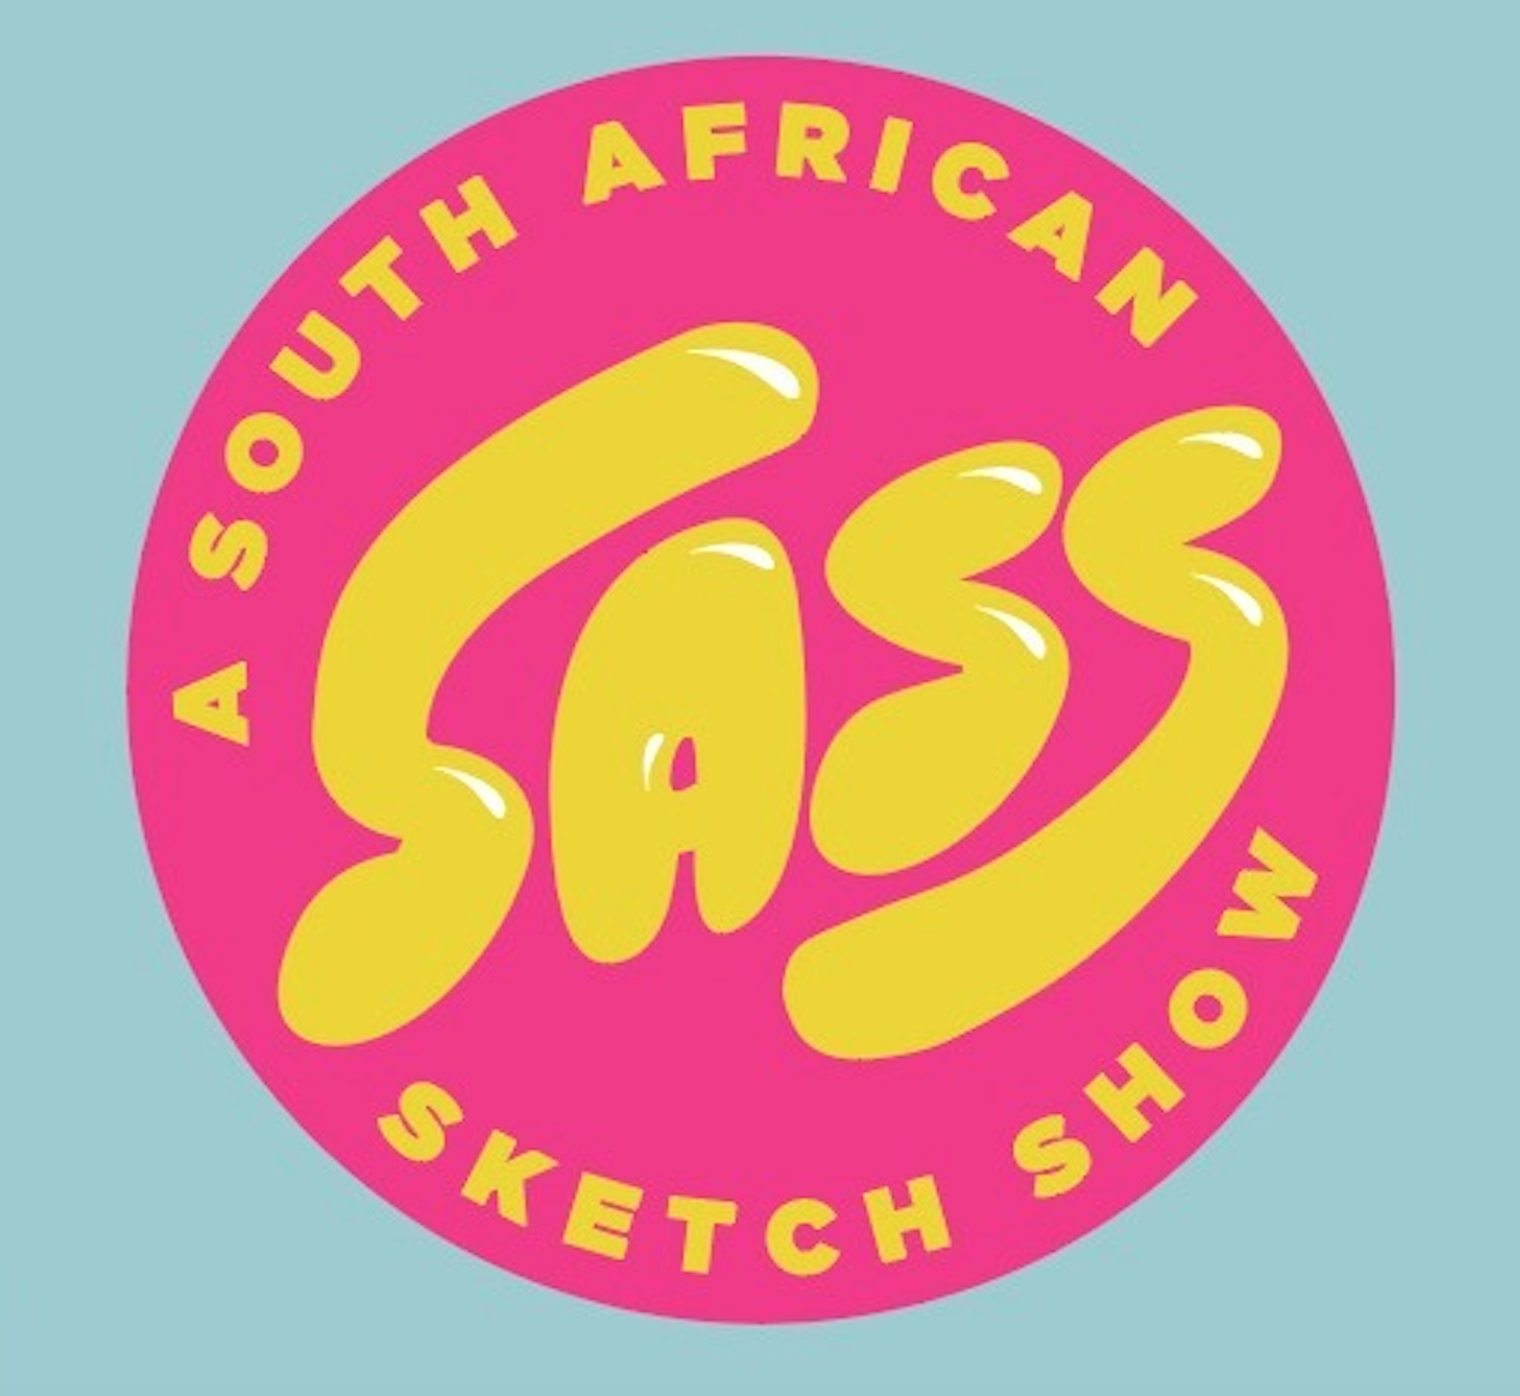 A SOUTH AFRICAN SKETCH SHOW : NEW EPISODE COMING SOON